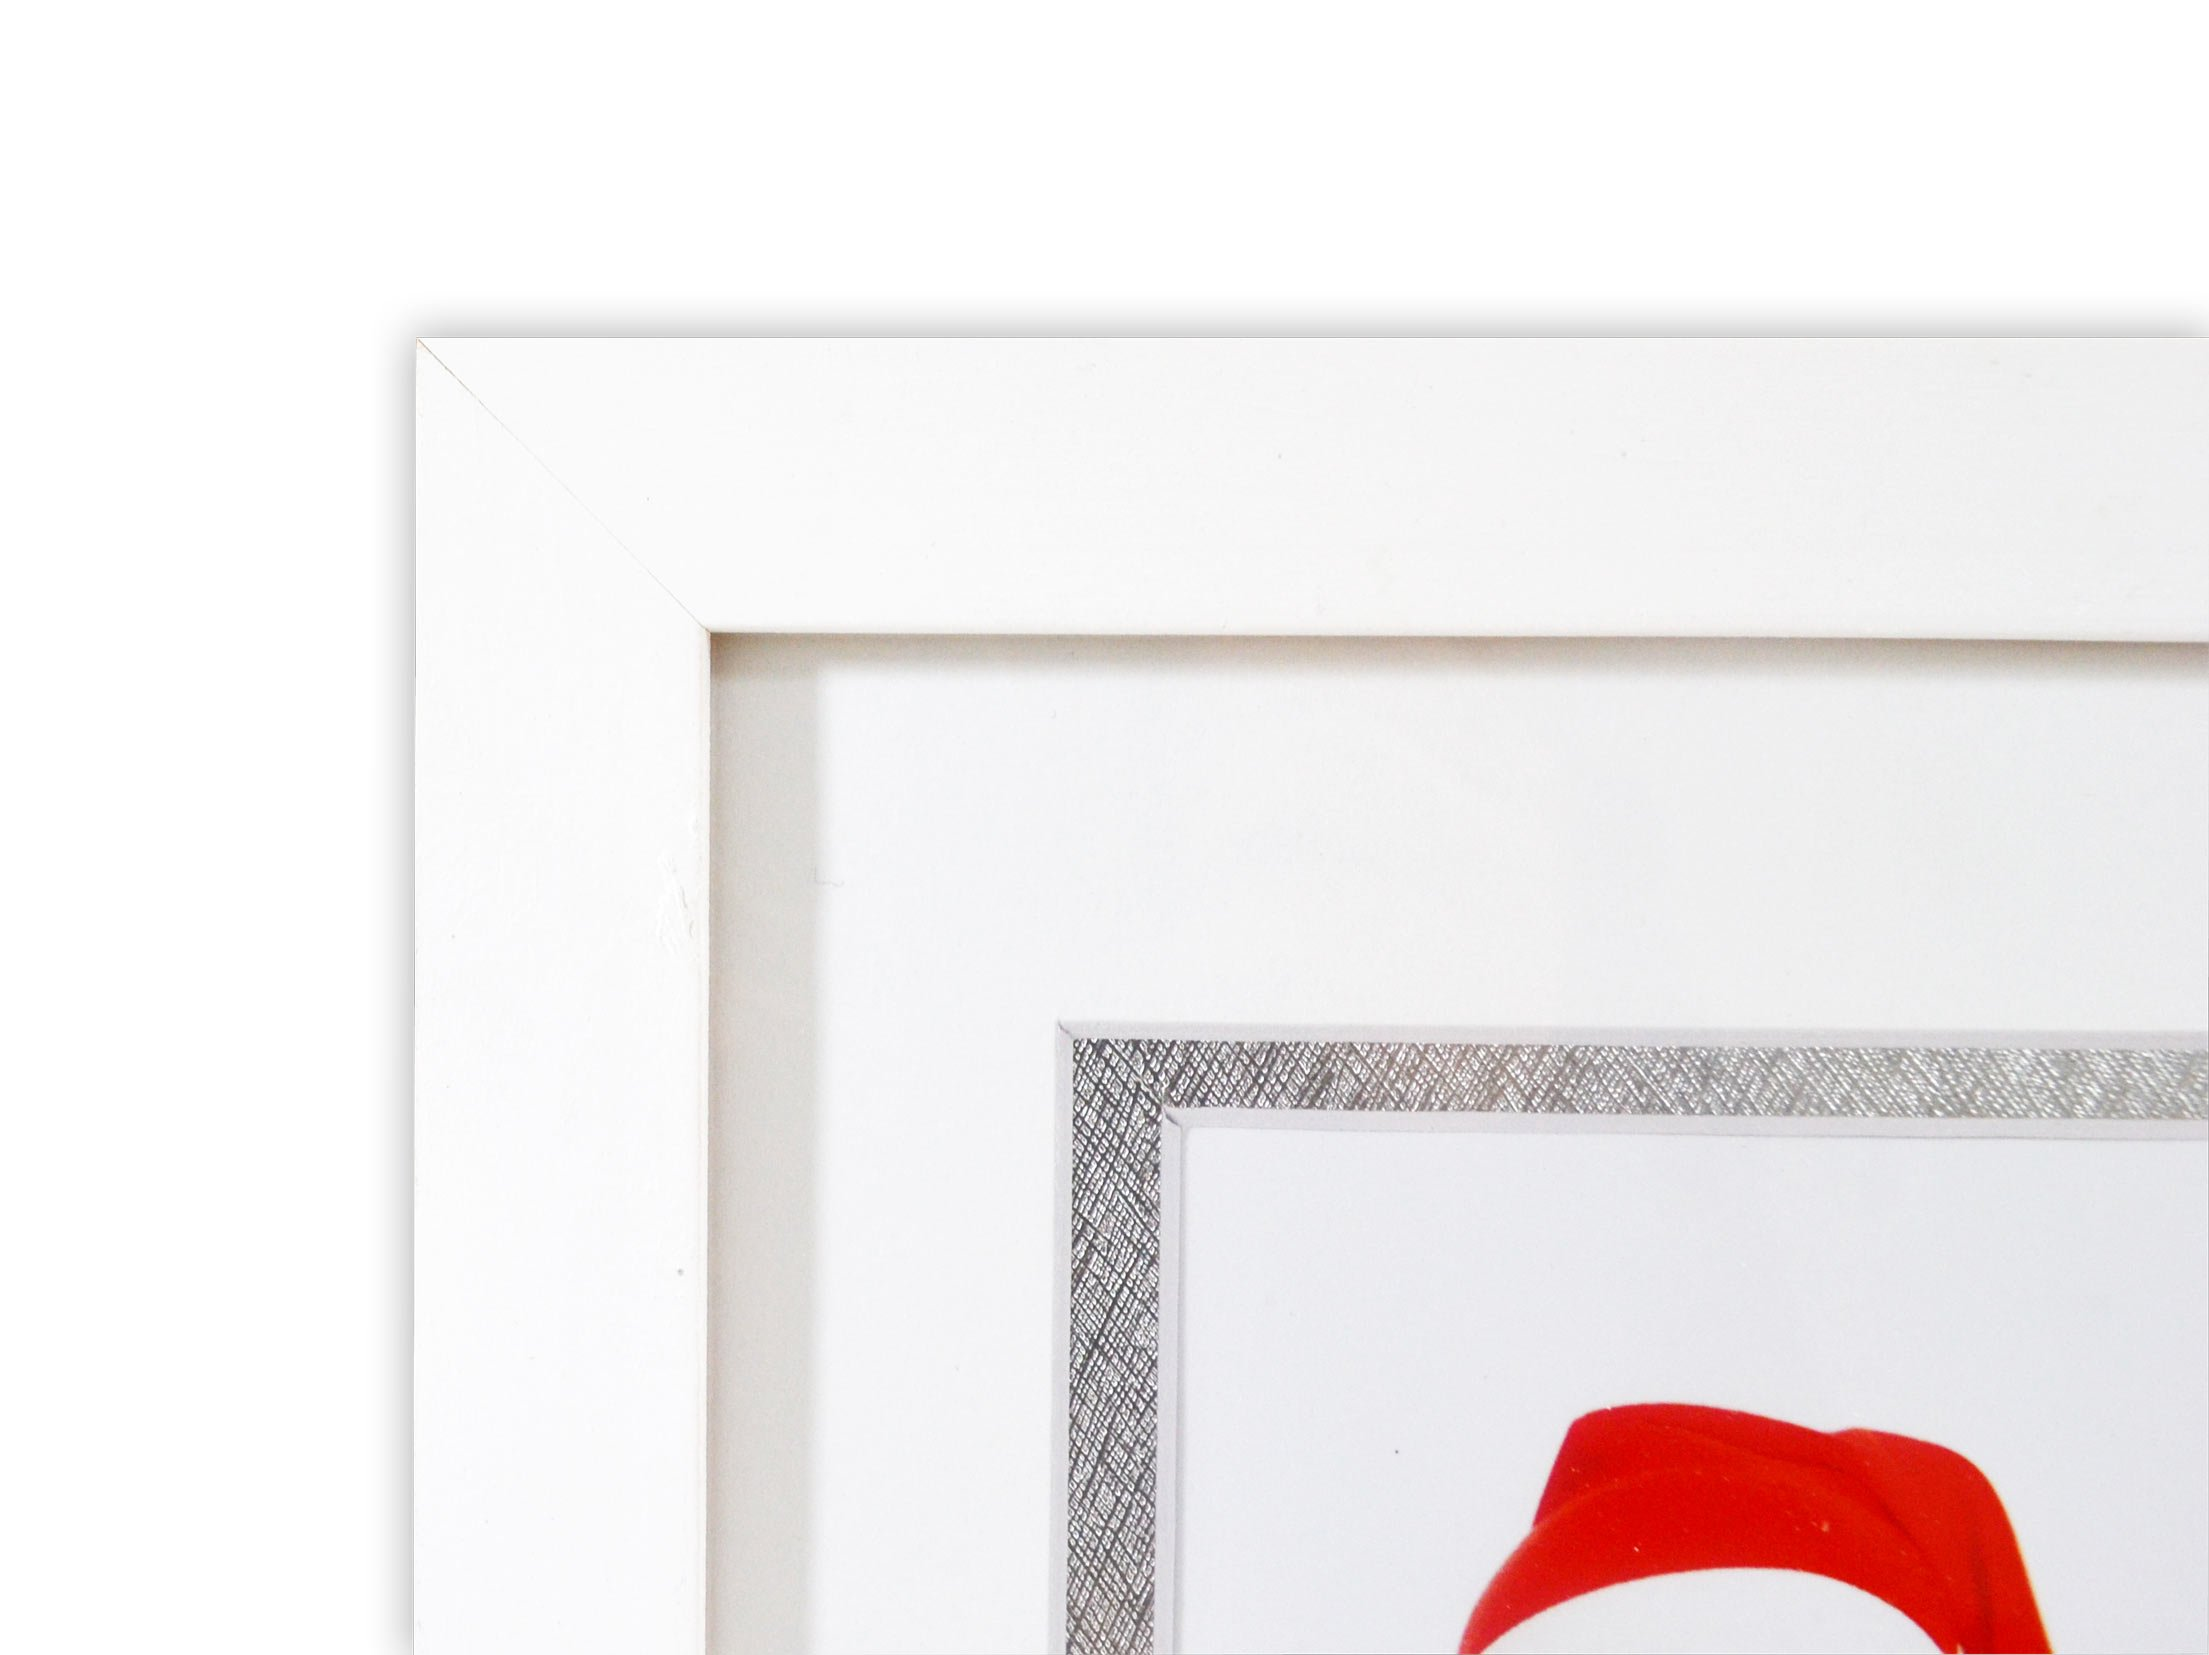 Golden State Art Baby Frames Collection, 8.5x16.3-inch Photo Wood Frame with White/Silver Double Mat for 3 4x6-inch Pictures, White by Golden State Art (Image #3)